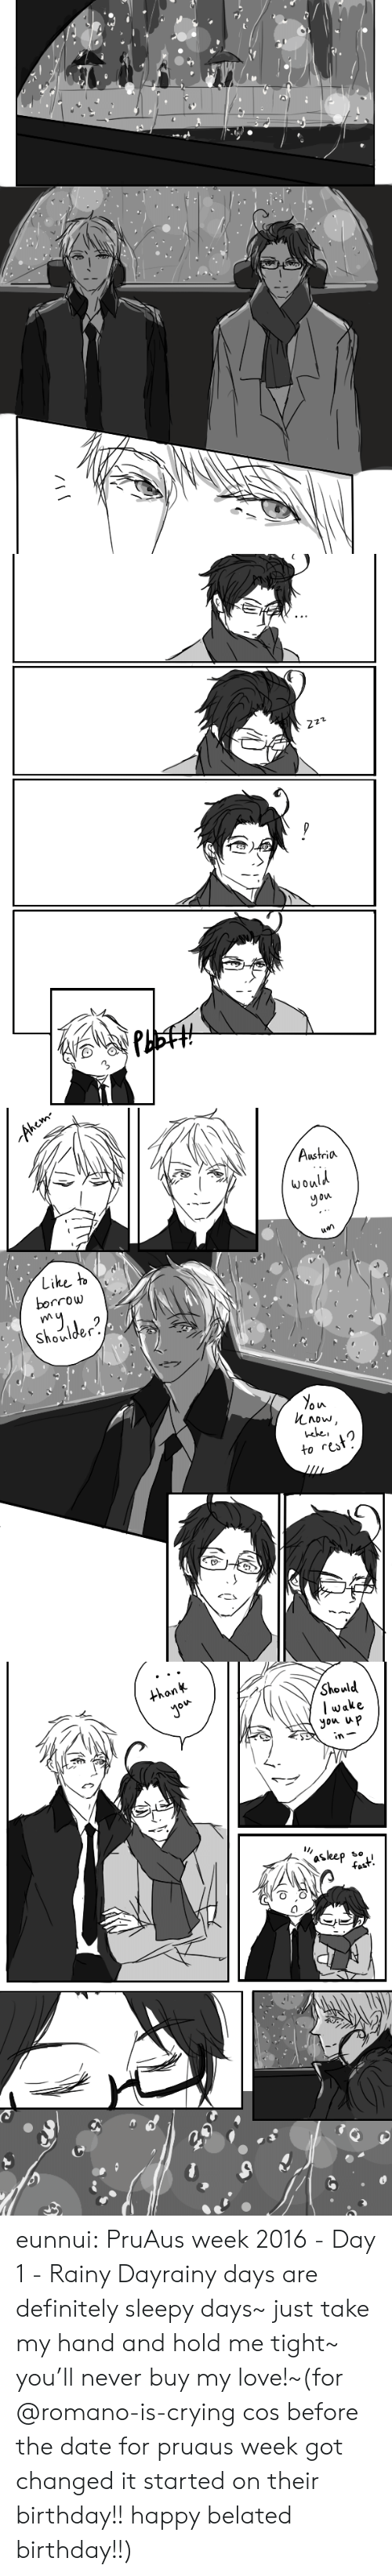 Belated Birthday: Austria  would  Uo  borrow  vly  O iA  Lnow  to rest   thonk  Should  lwake  yon up  iA eunnui:  PruAus week 2016 - Day 1 - Rainy Dayrainy days are definitely sleepy days~ just take my hand and hold me tight~ you'll never buy my love!~(for @romano-is-crying cos before the date for pruaus week got changed it started on their birthday!! happy belated birthday!!)